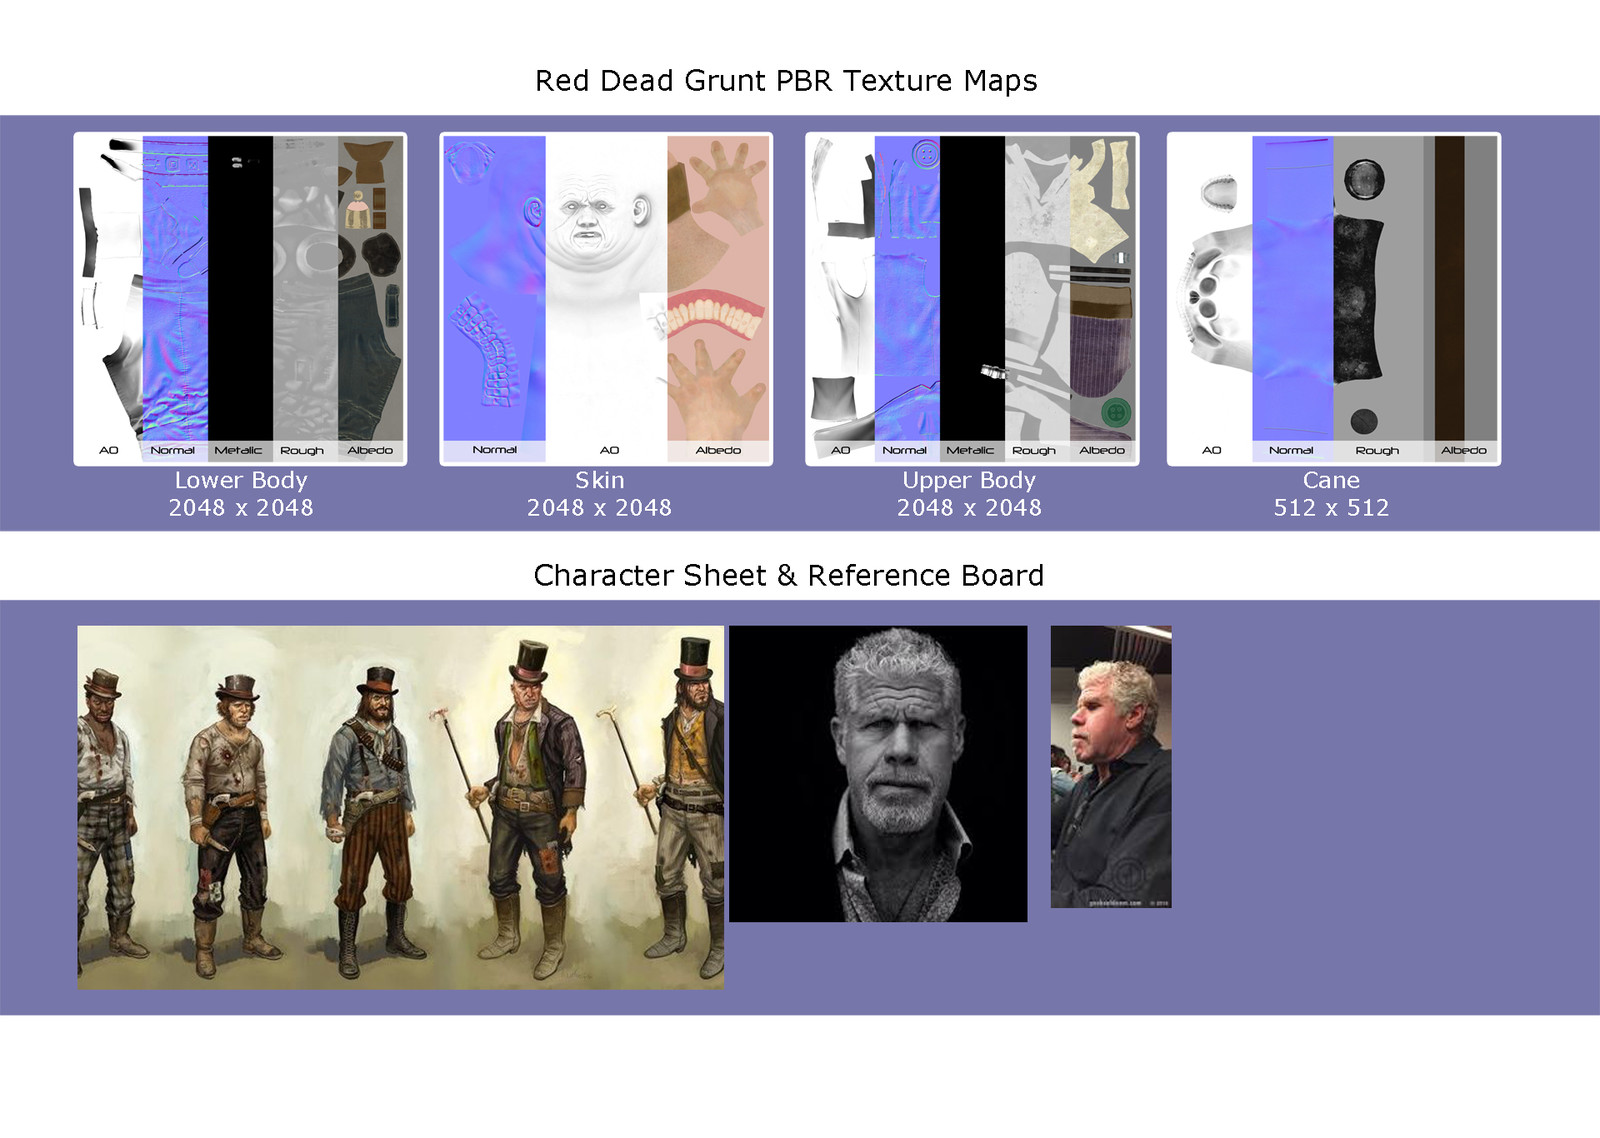 The concept art was found in an online article that speculated that the image had been leaked from RockStar games during the development of Red Dead Redemption 2.